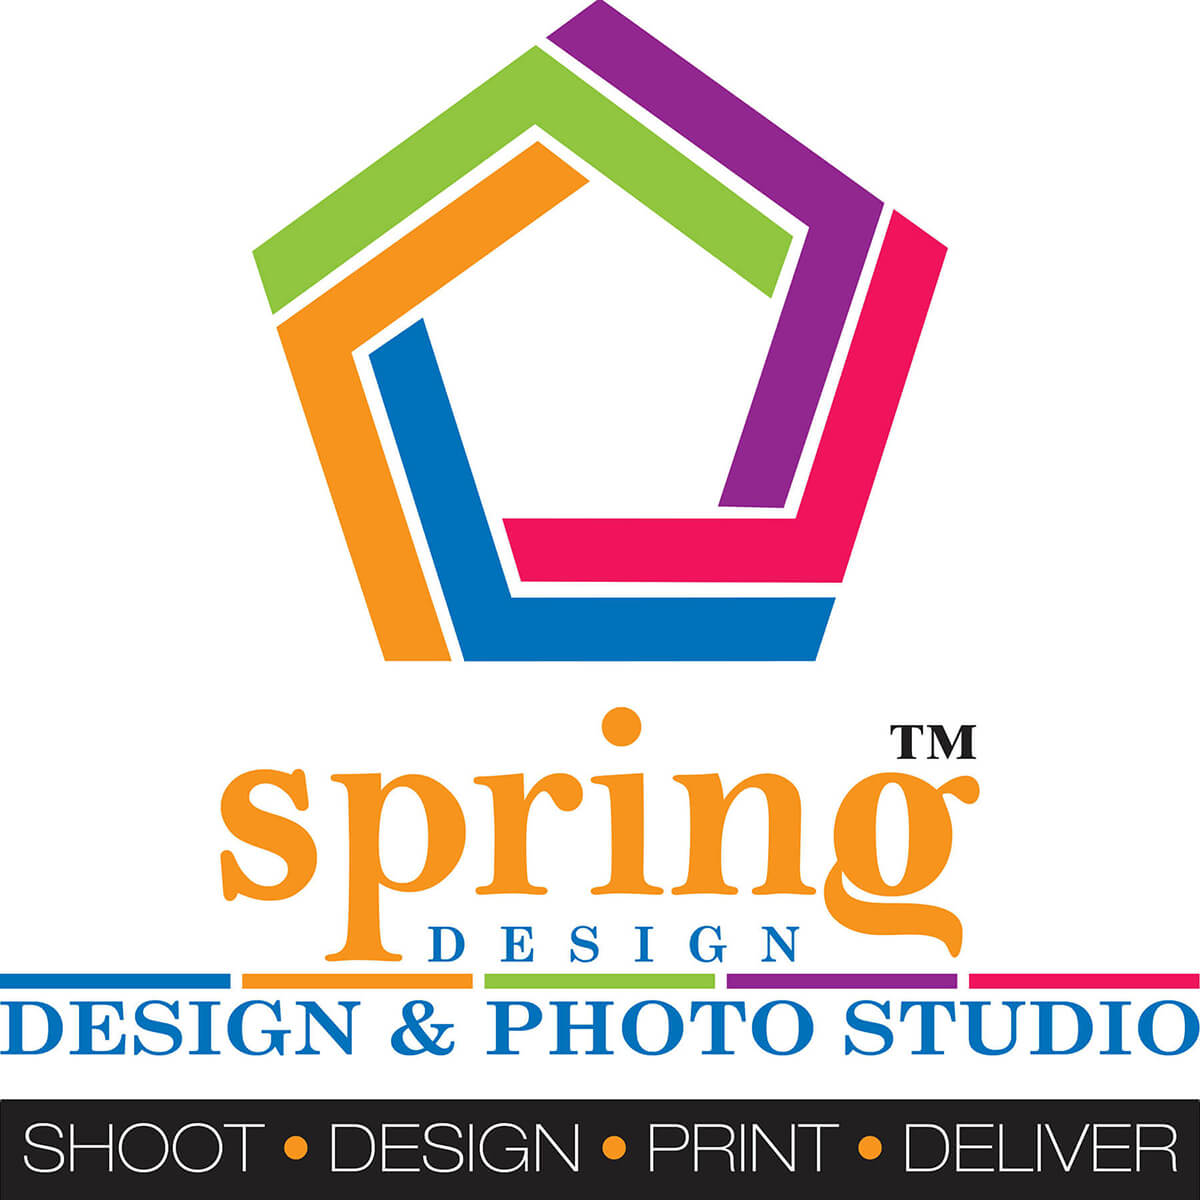 Spring Design & Photo Studio